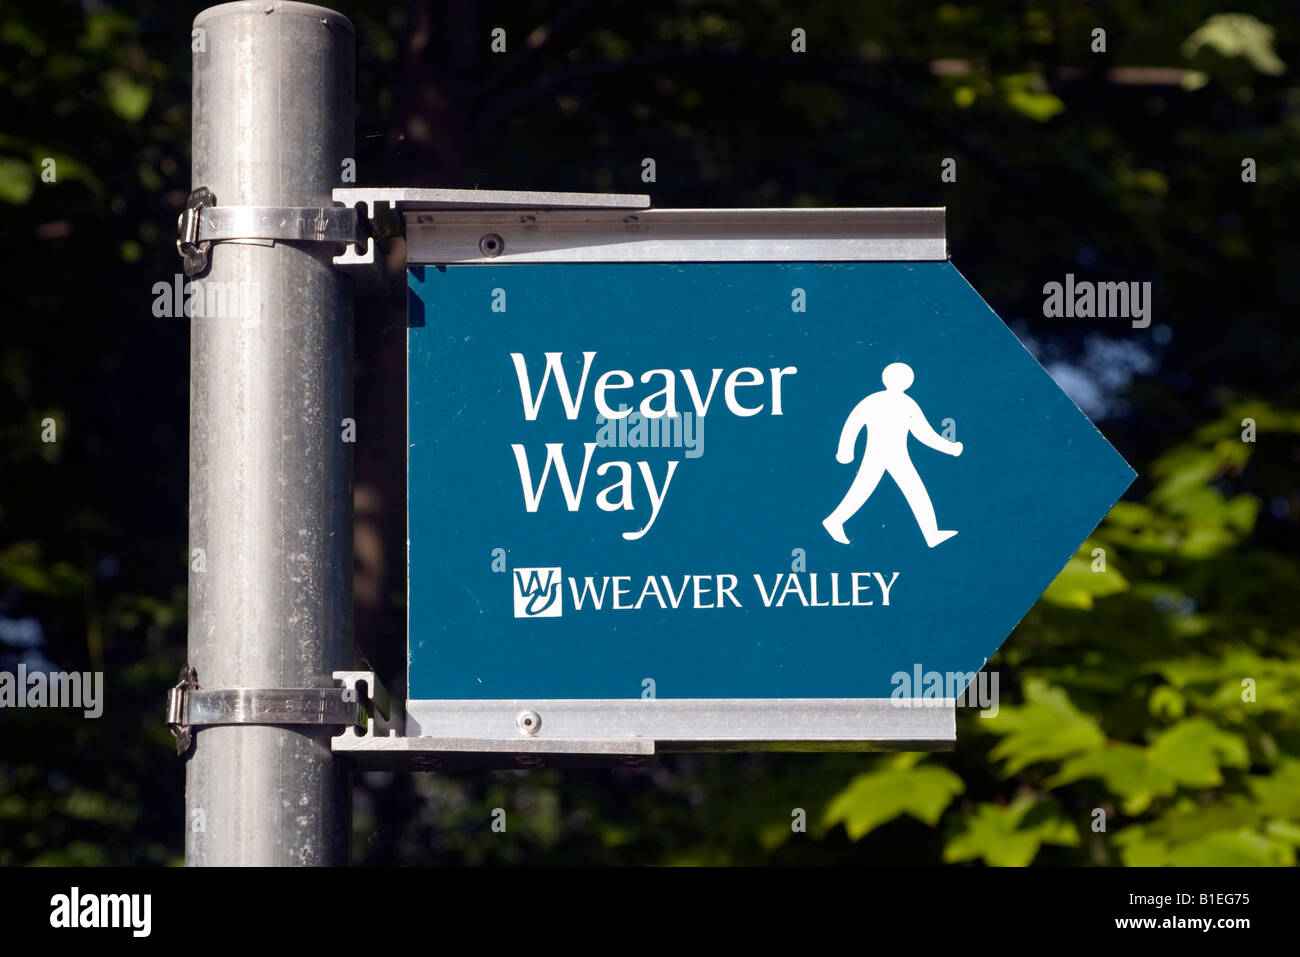 Weaver Way Sign, Cheshire. - Stock Image